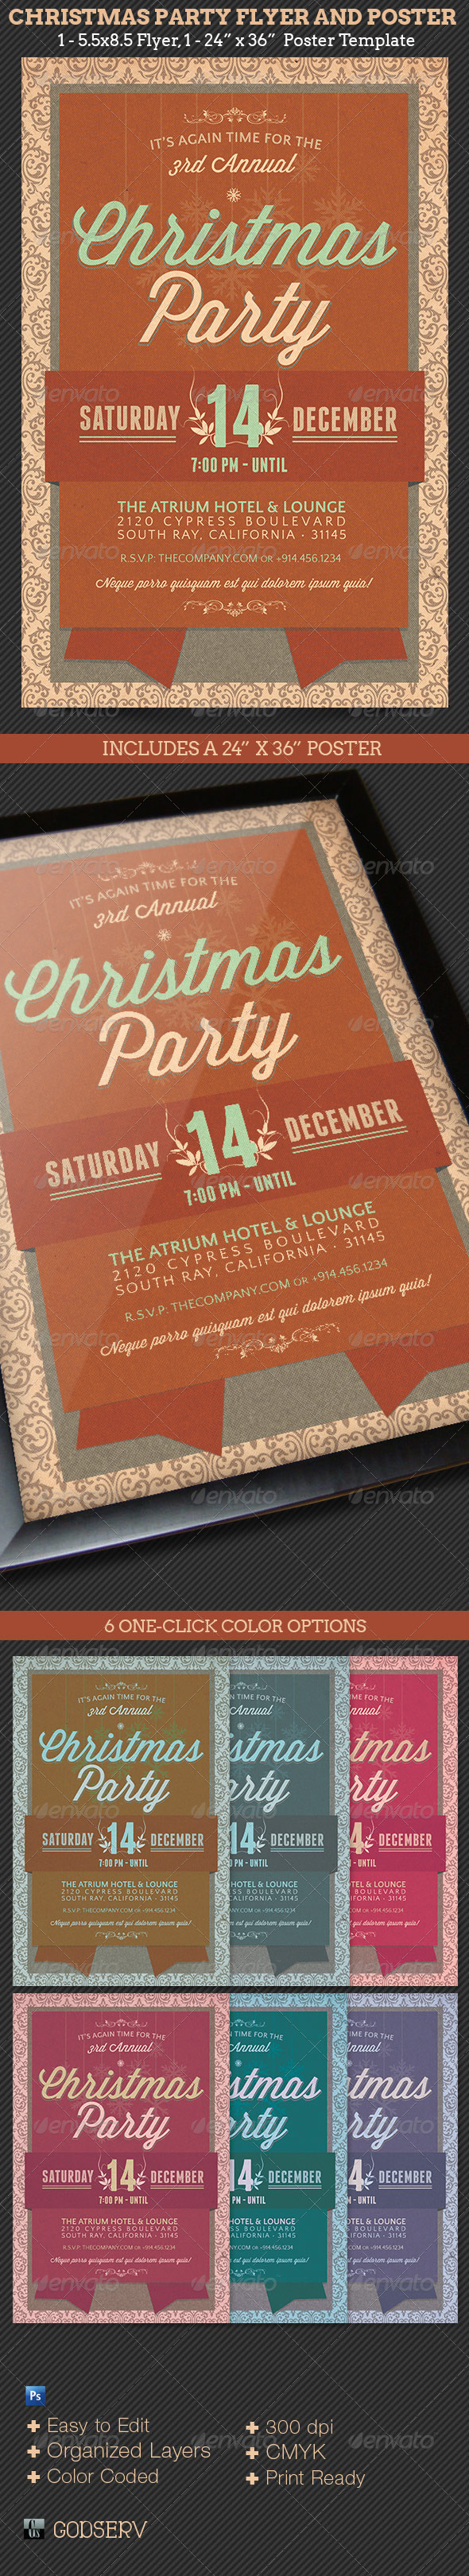 Christmas Party Flyer Poster Template - Holidays Events